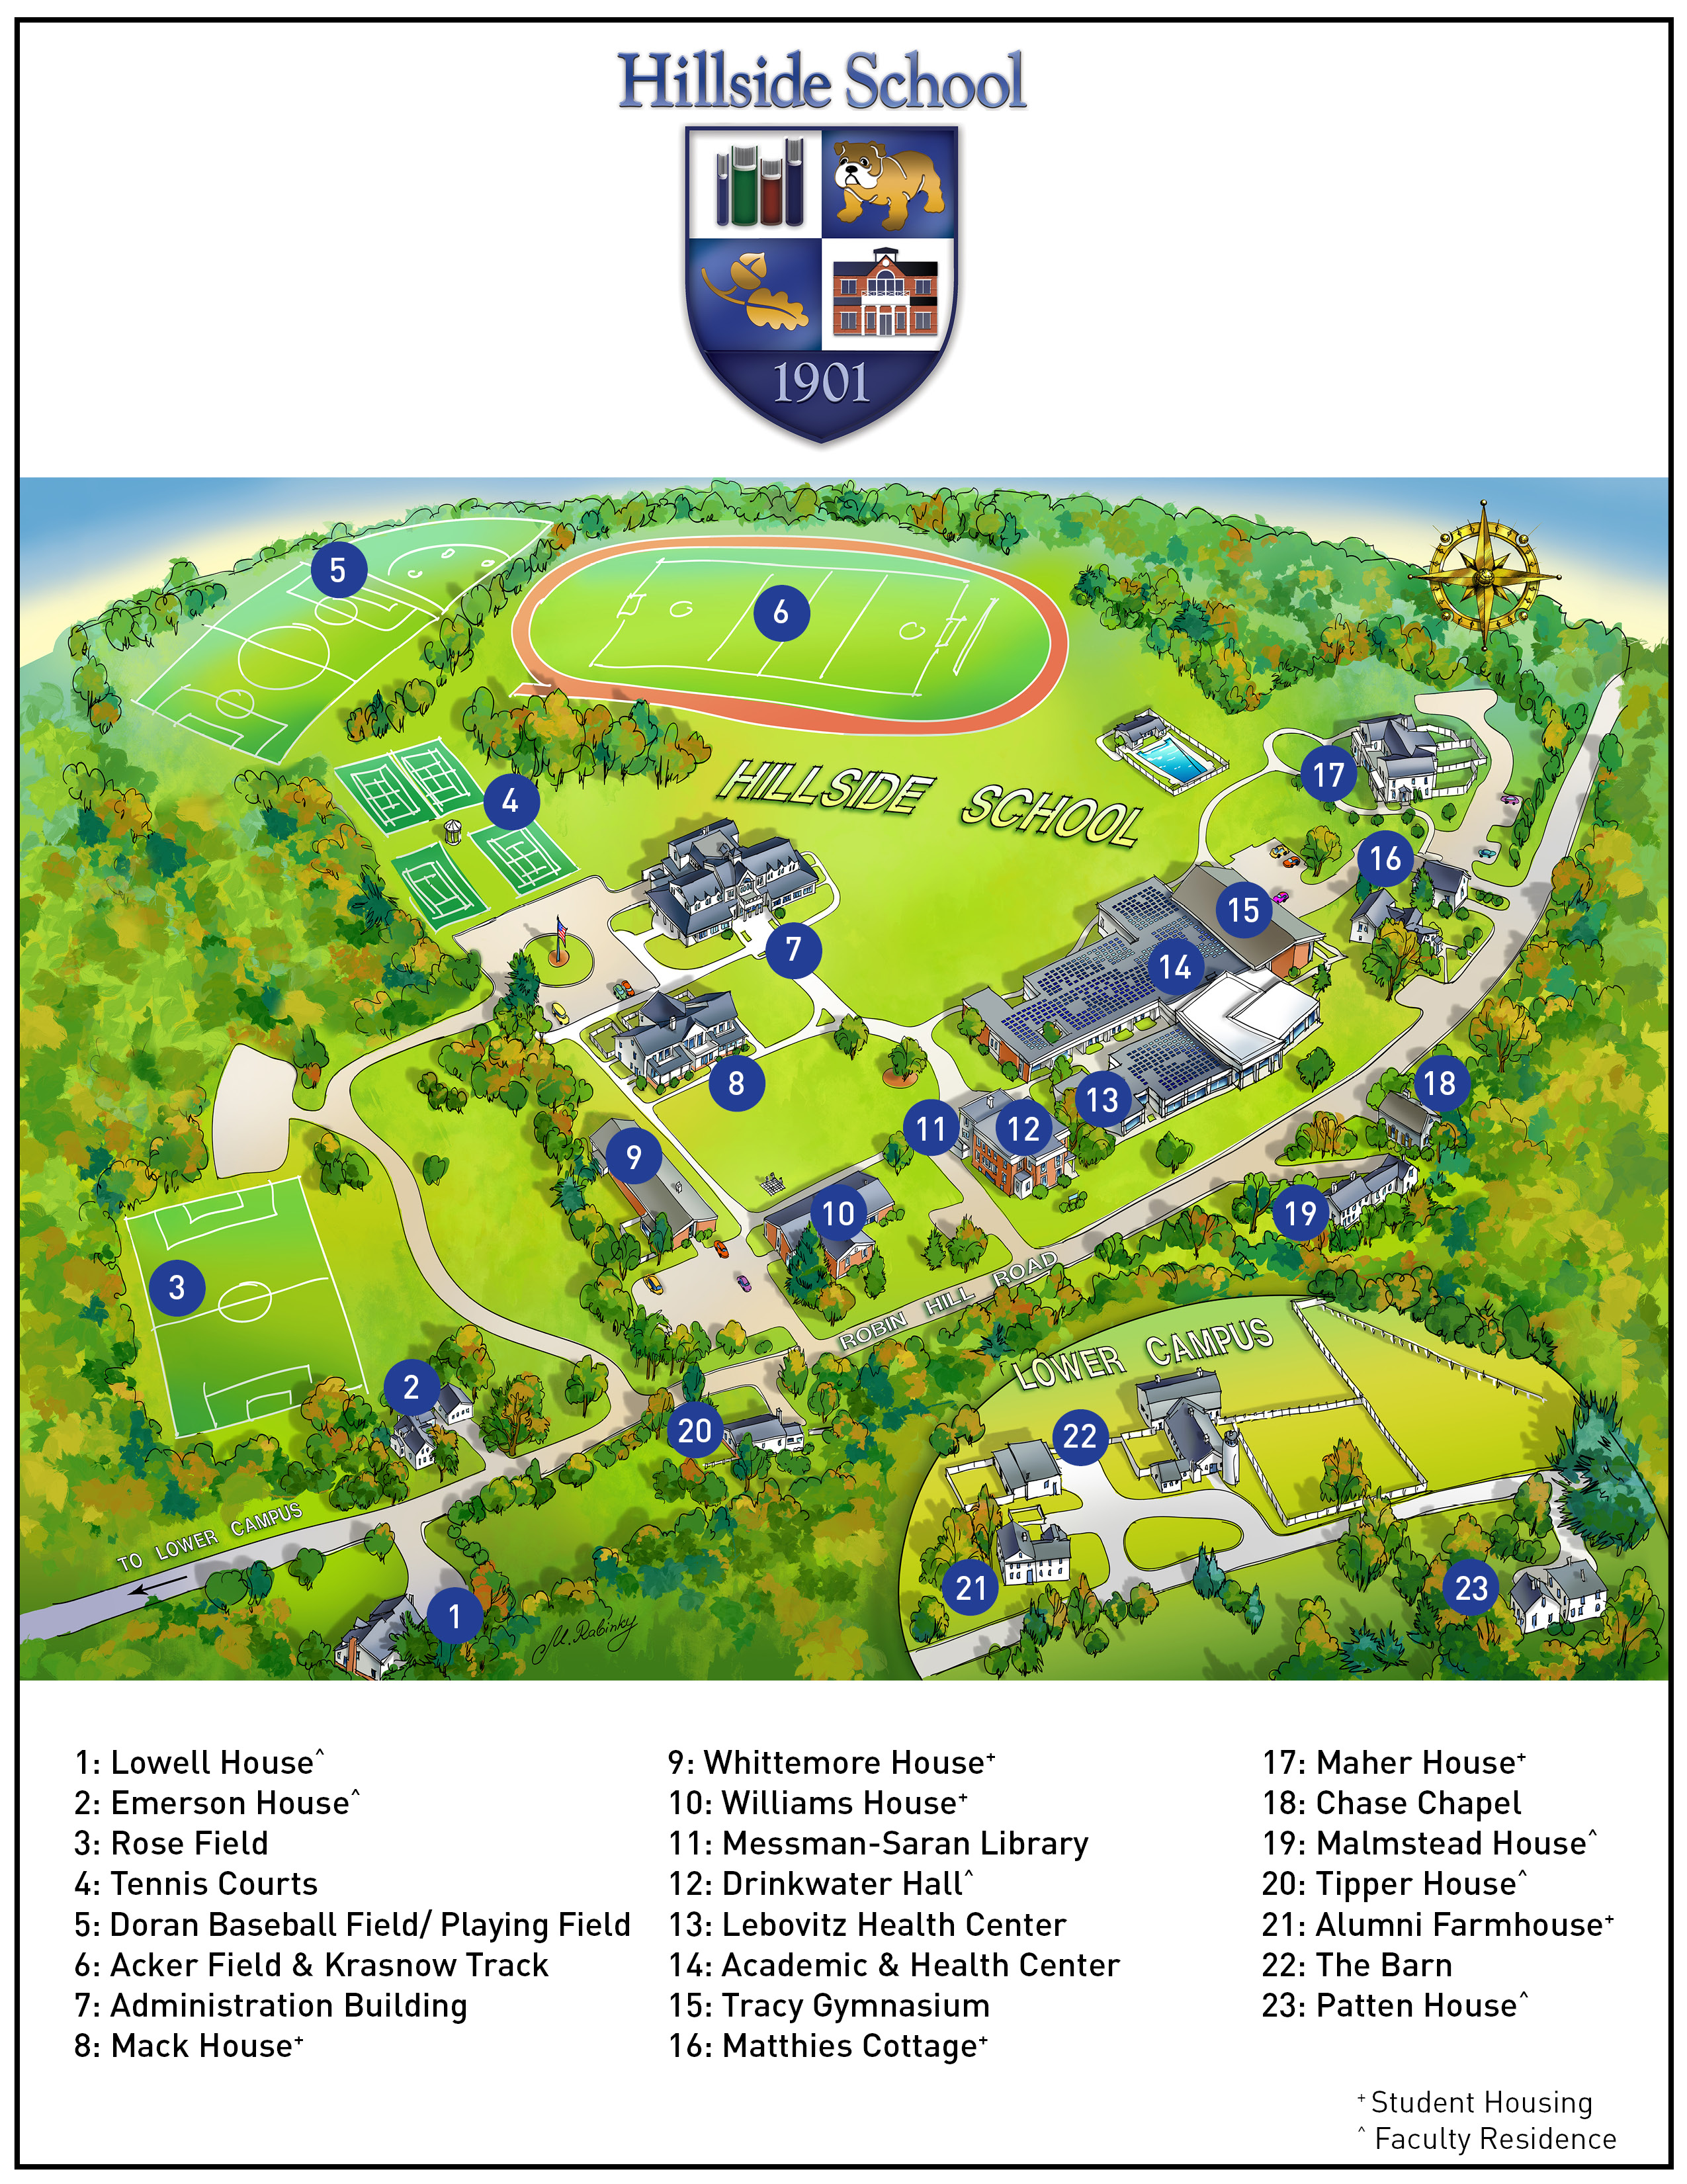 Hillside School campus map